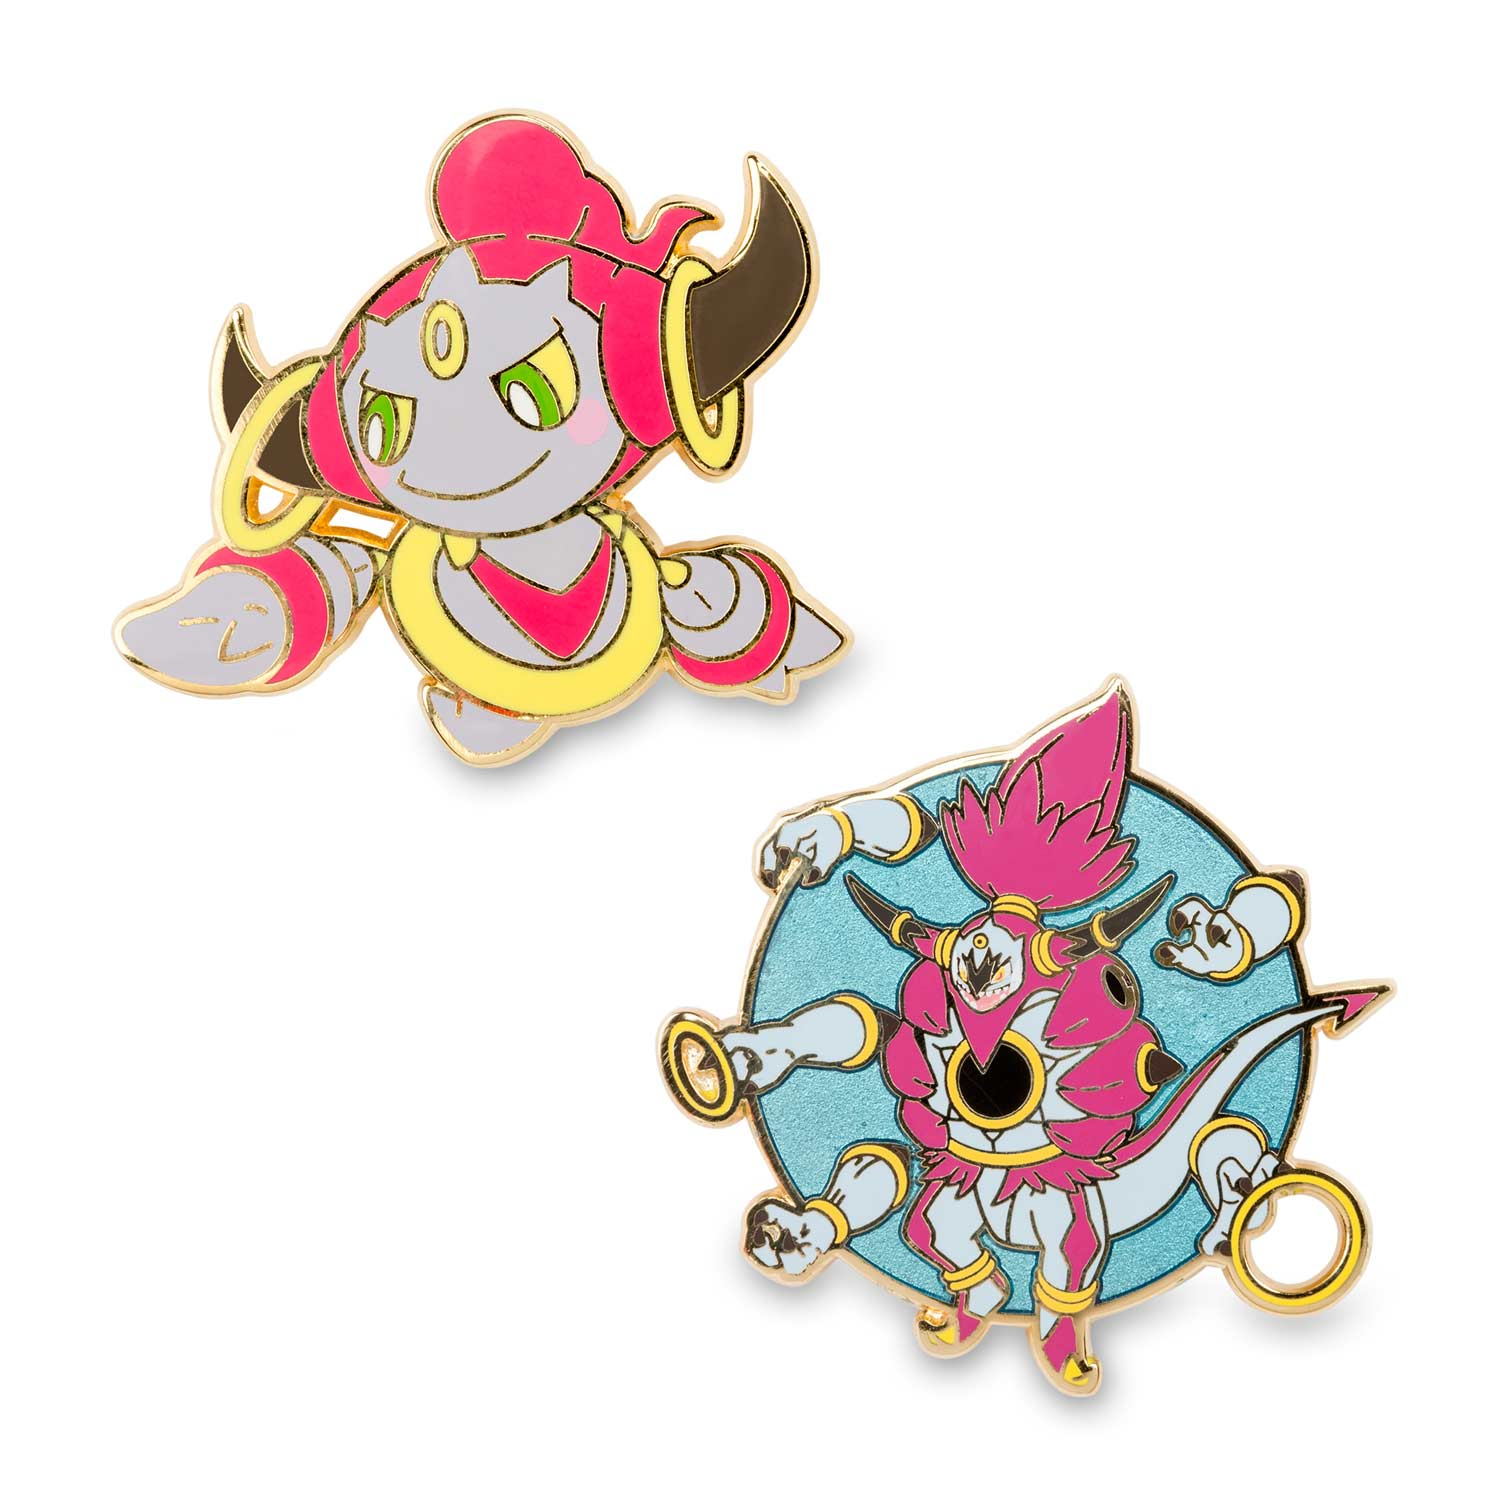 Hoopa Confined And Hoopa Unbound Pok 233 Mon Pins Pin Collection Pok 233 Mon Center Original